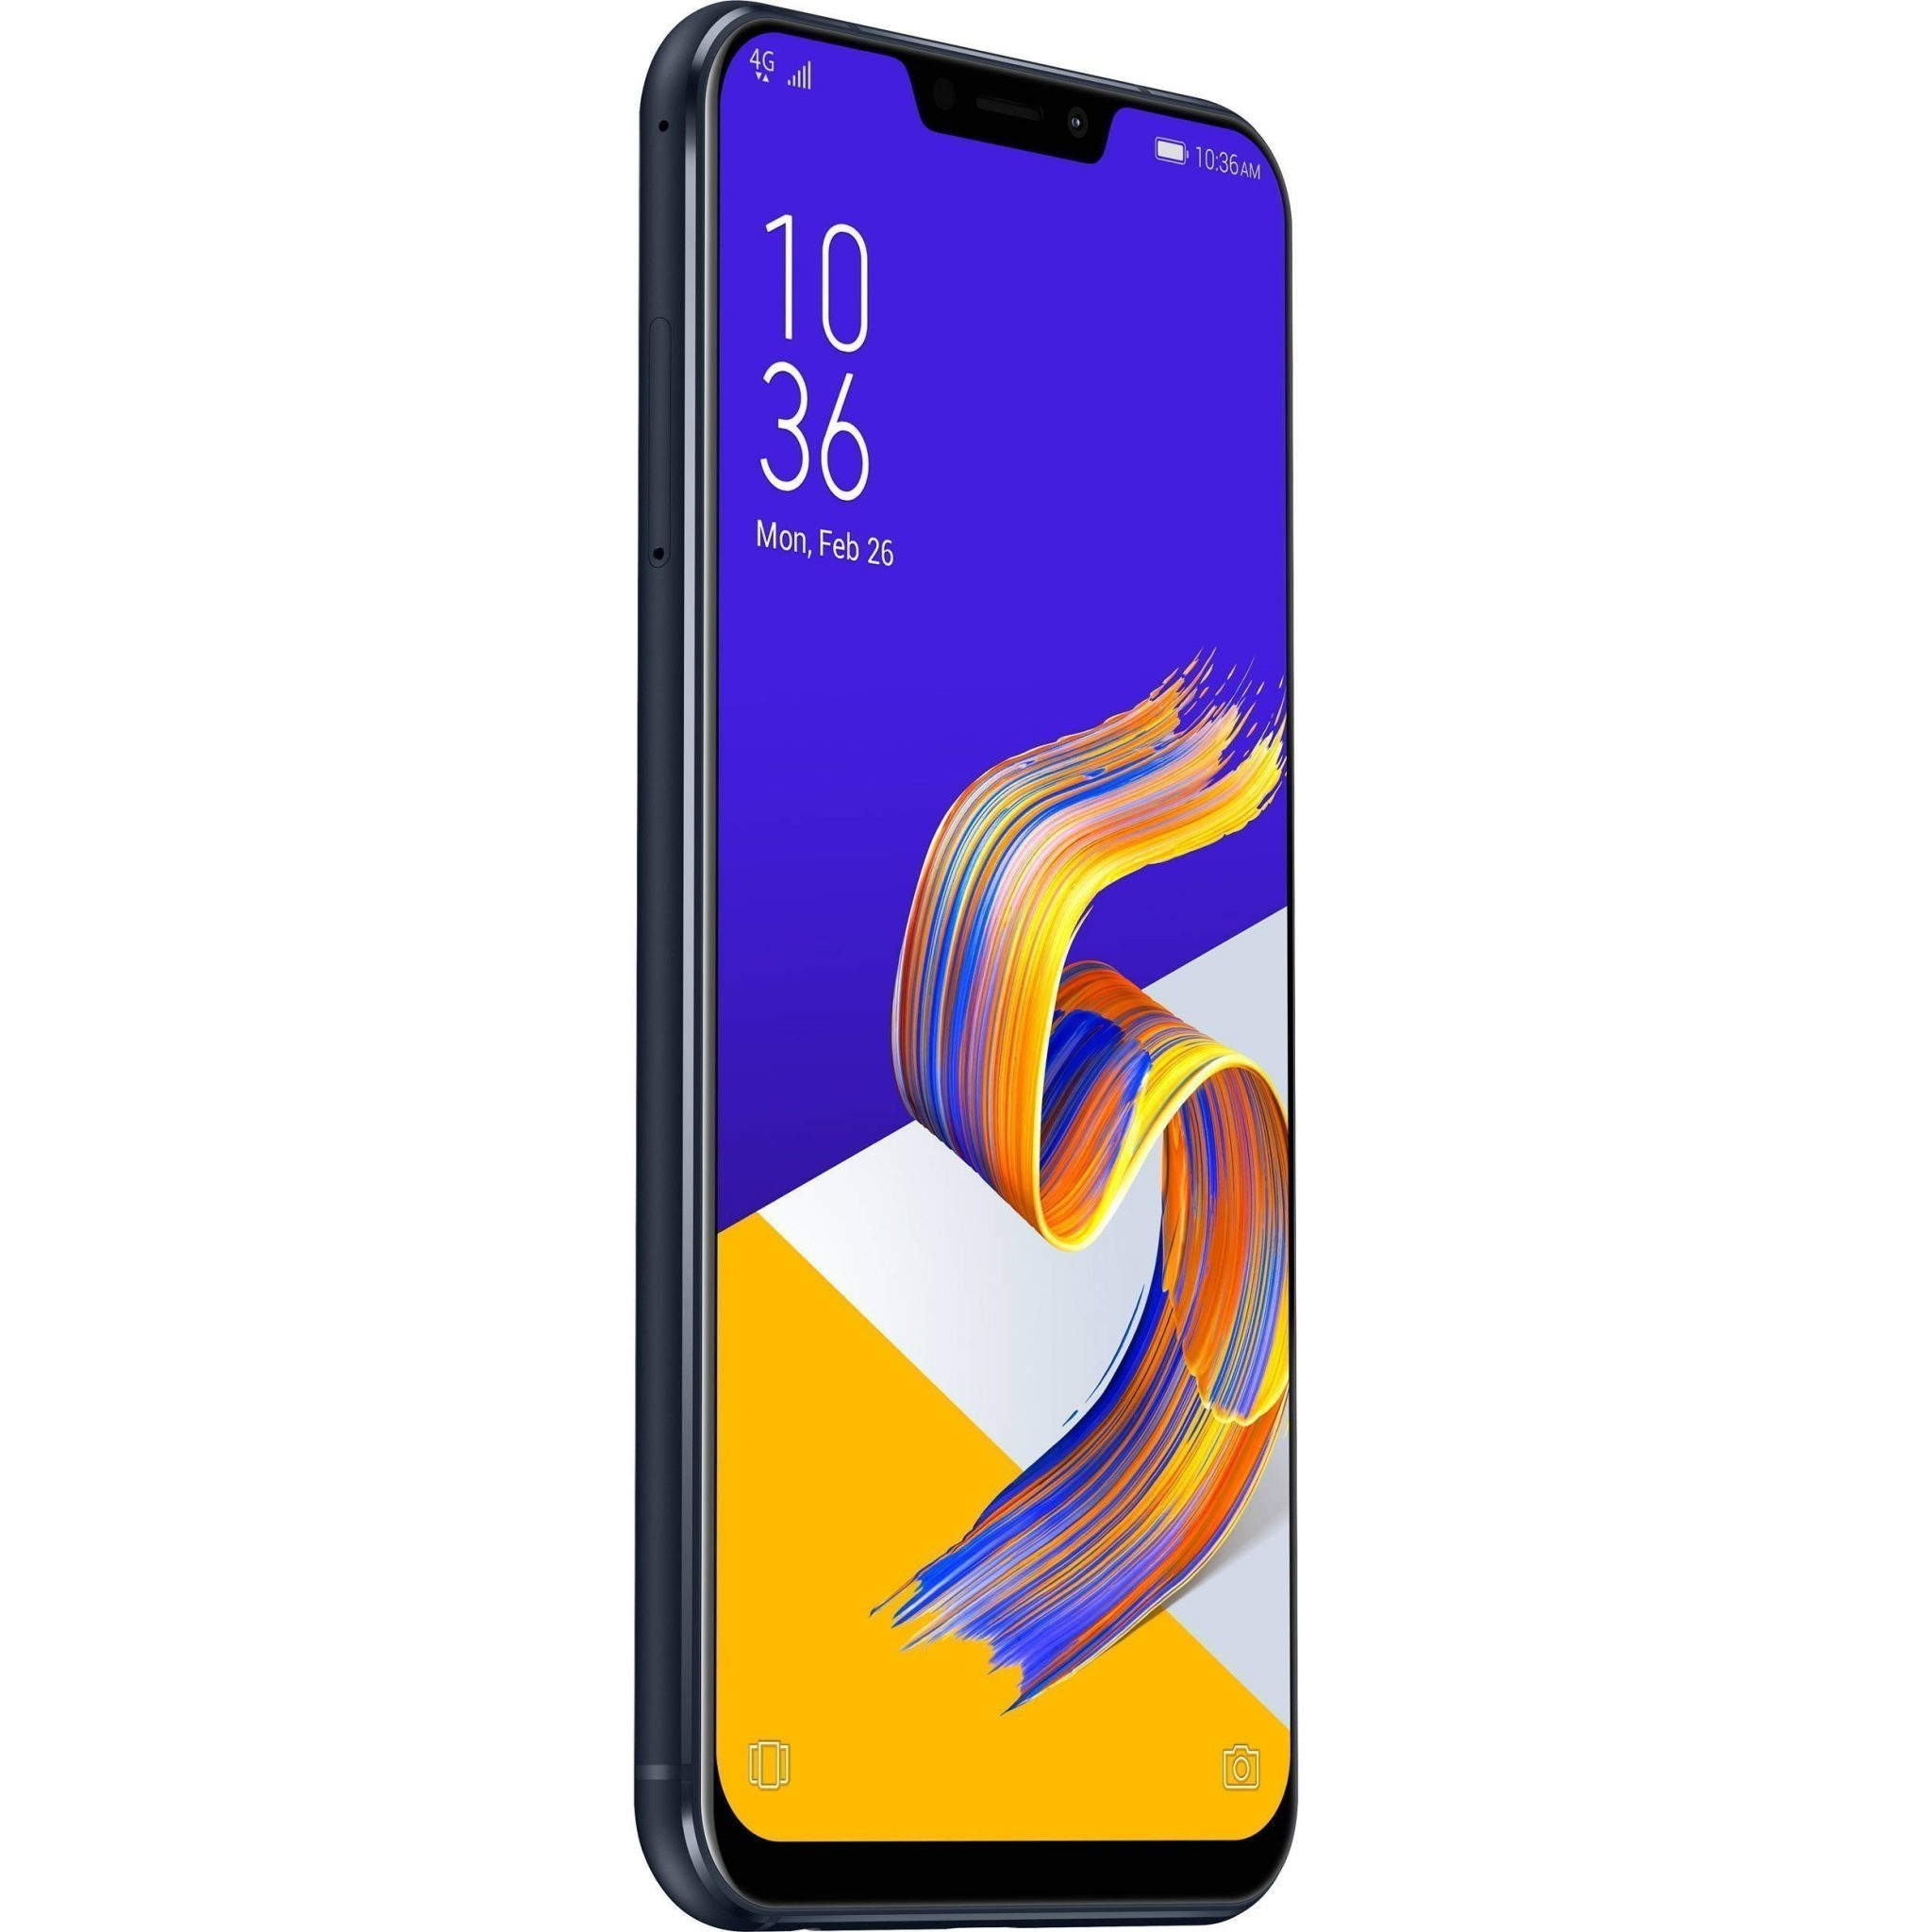 Update Zenfone 5Z to Android Pie based on Resurrection Remix 7.0